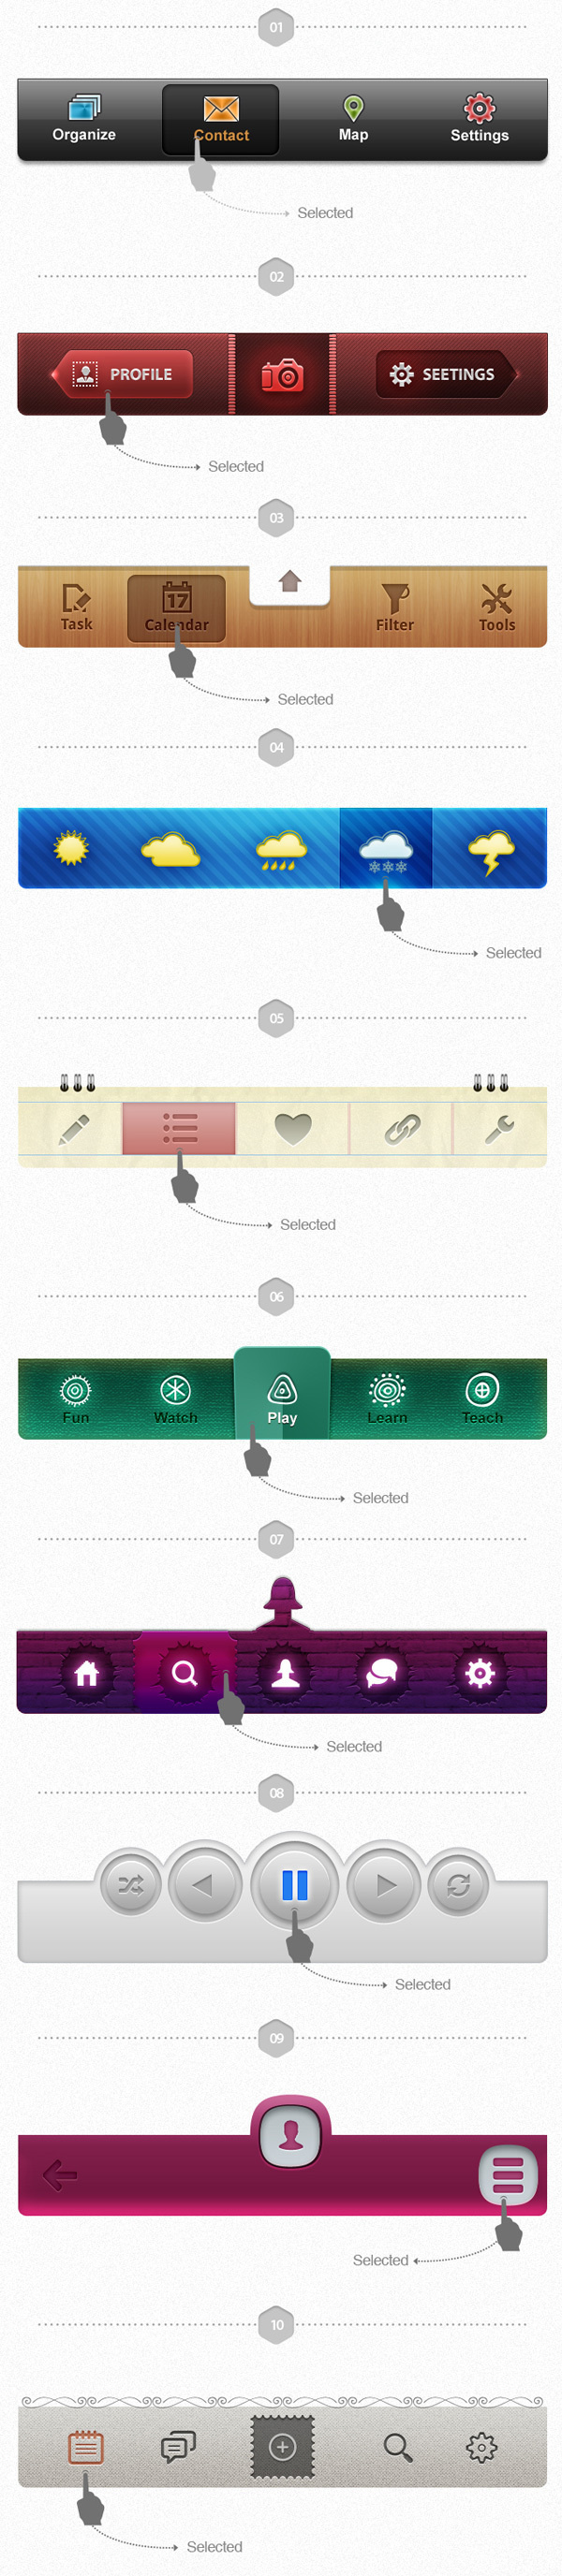 UI Pack for iOS Volume II Build Apps. #controls #design #ui #iphone #element #ios #buttons